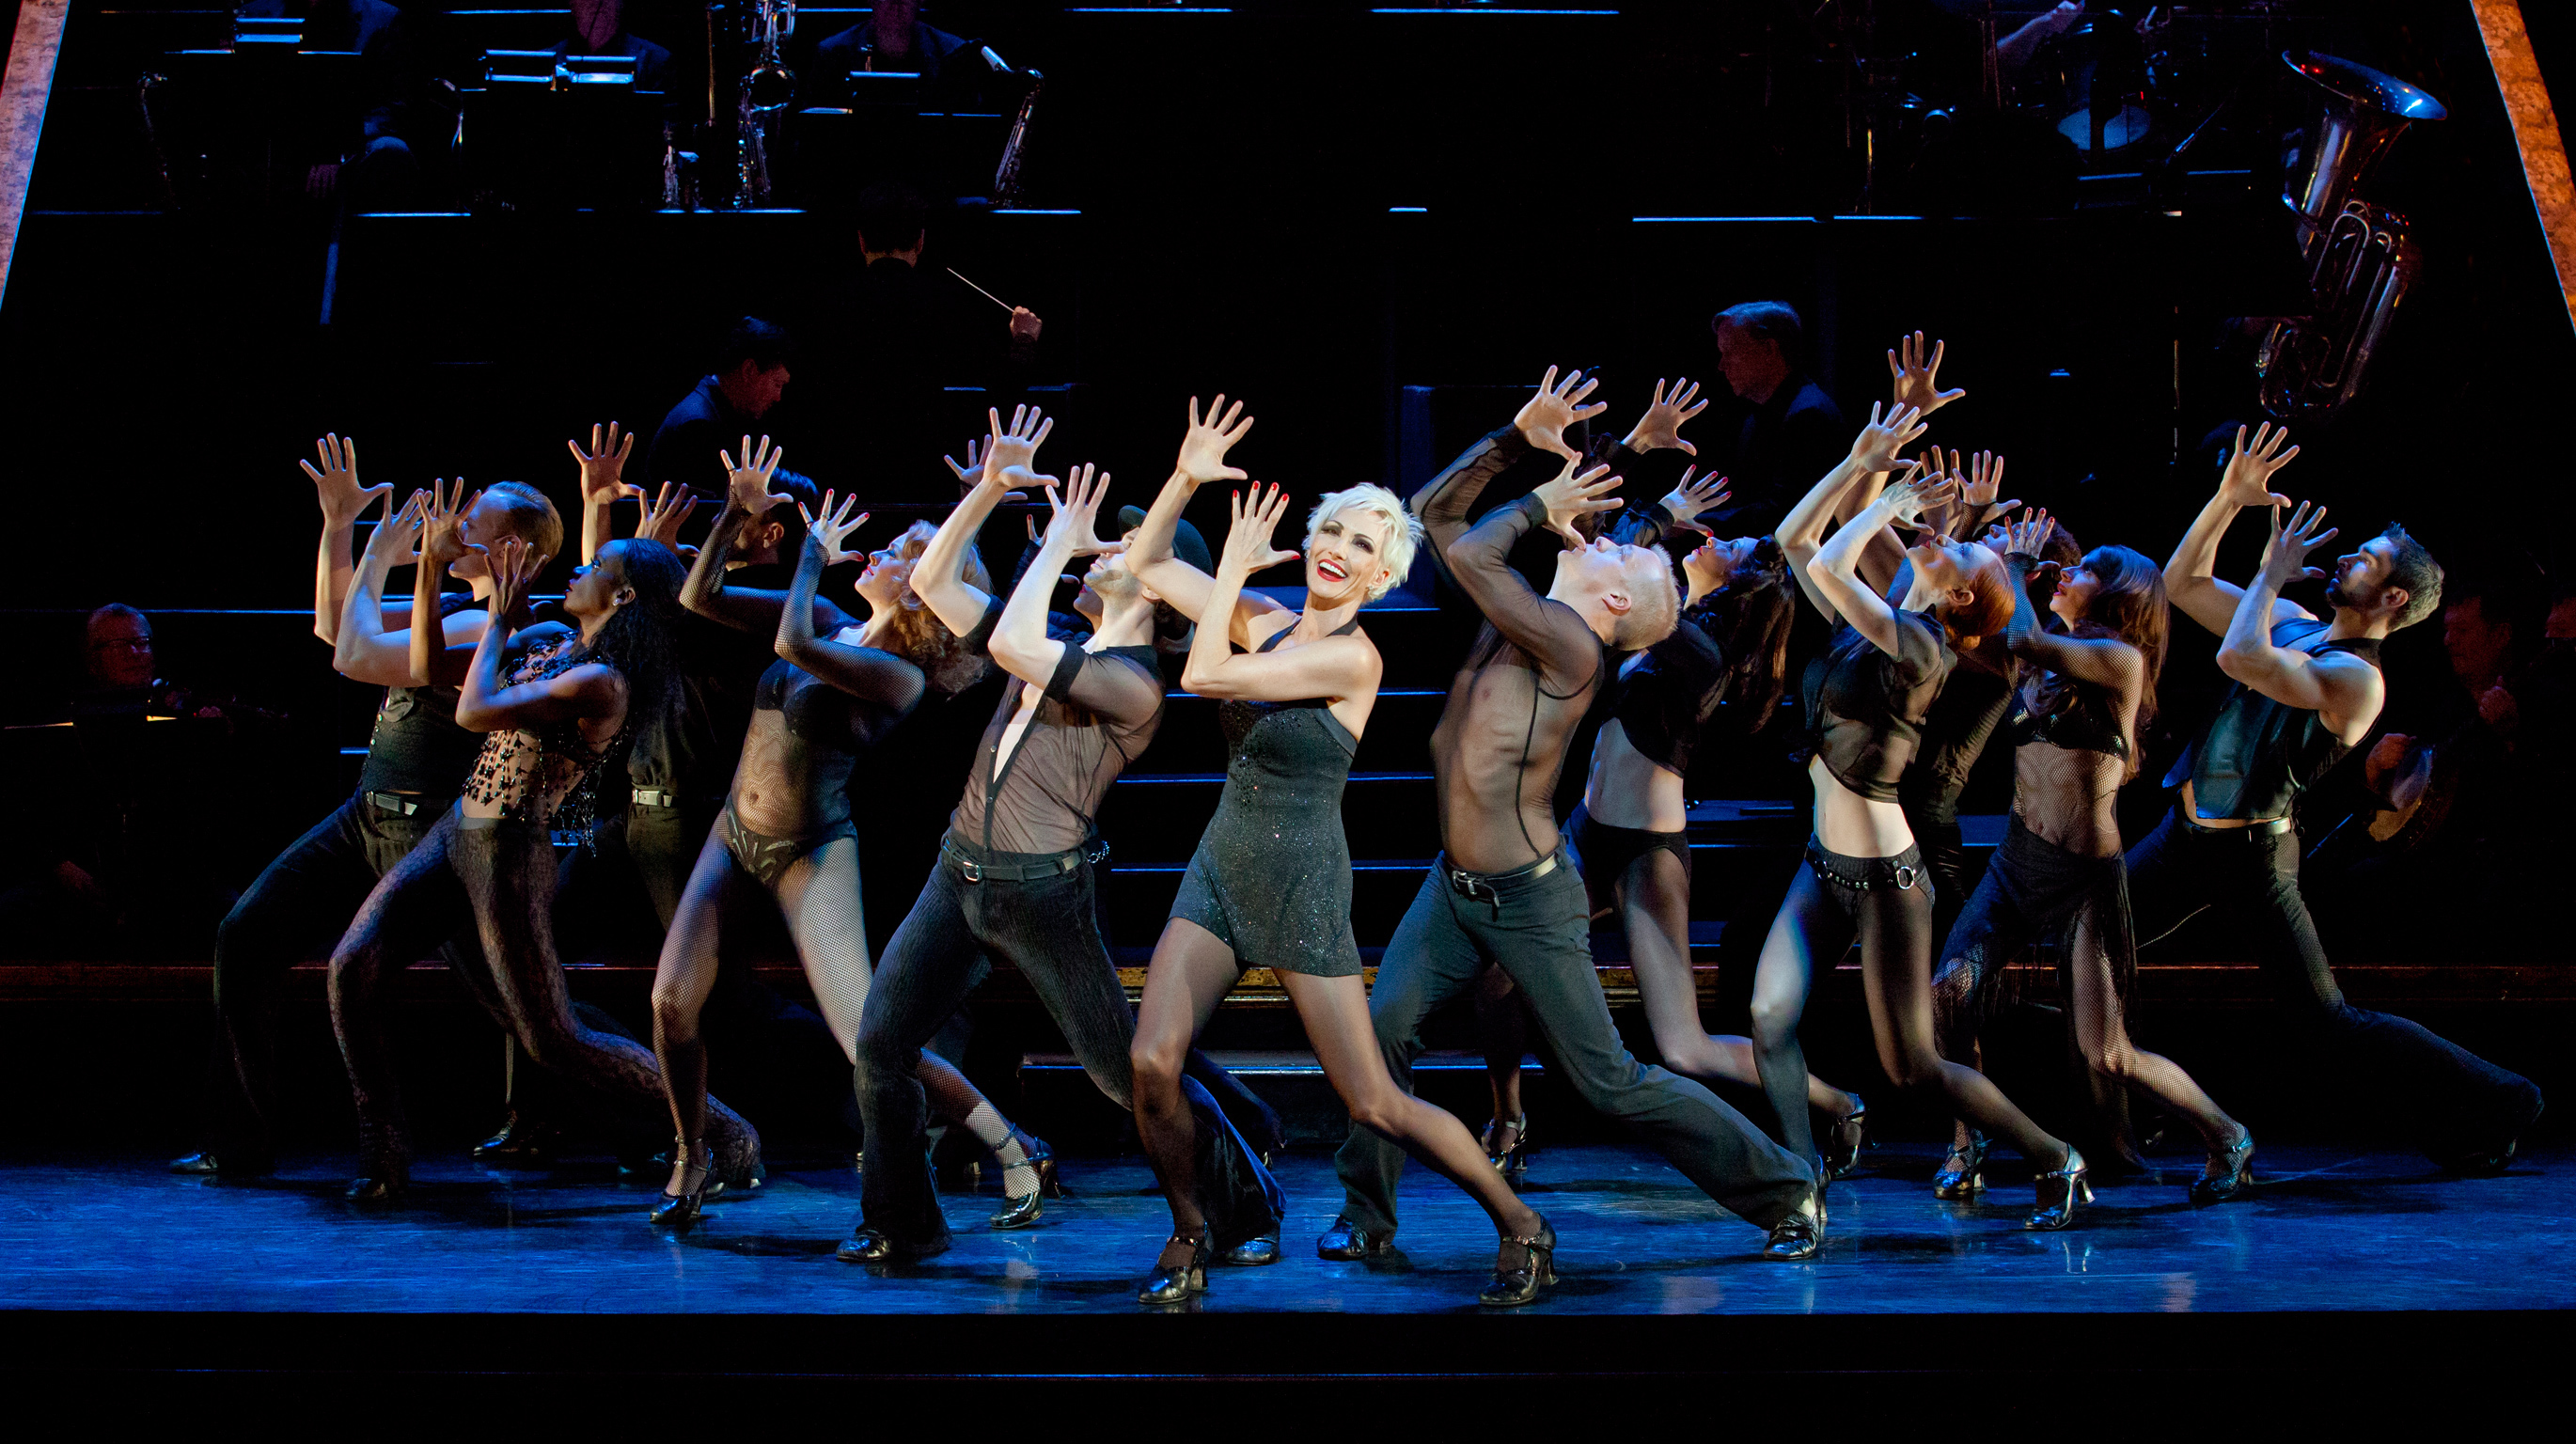 Best Broadway shows: musicals, plays and revivals to see now